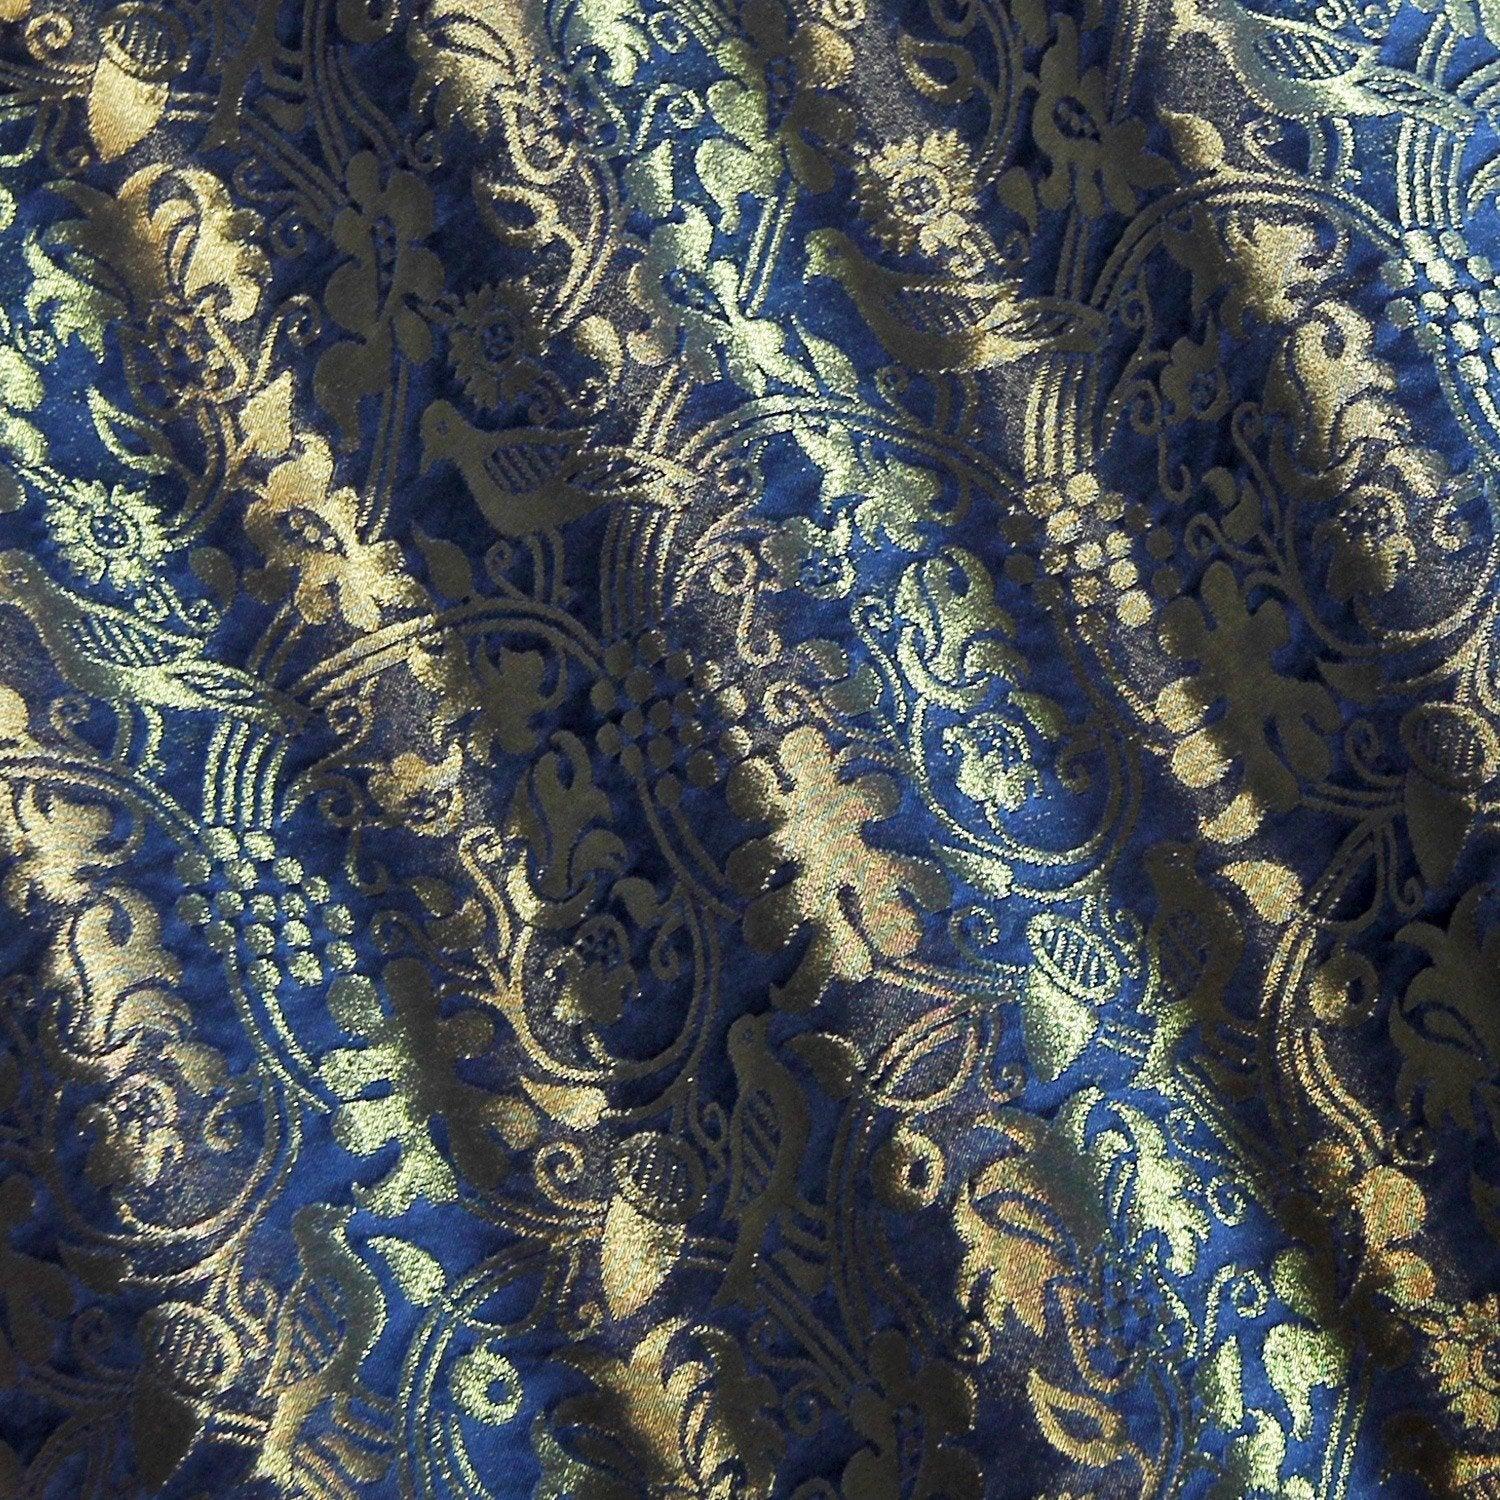 Hilliard Silk Damask - Blue & Gilt - Watts & Co. (international)